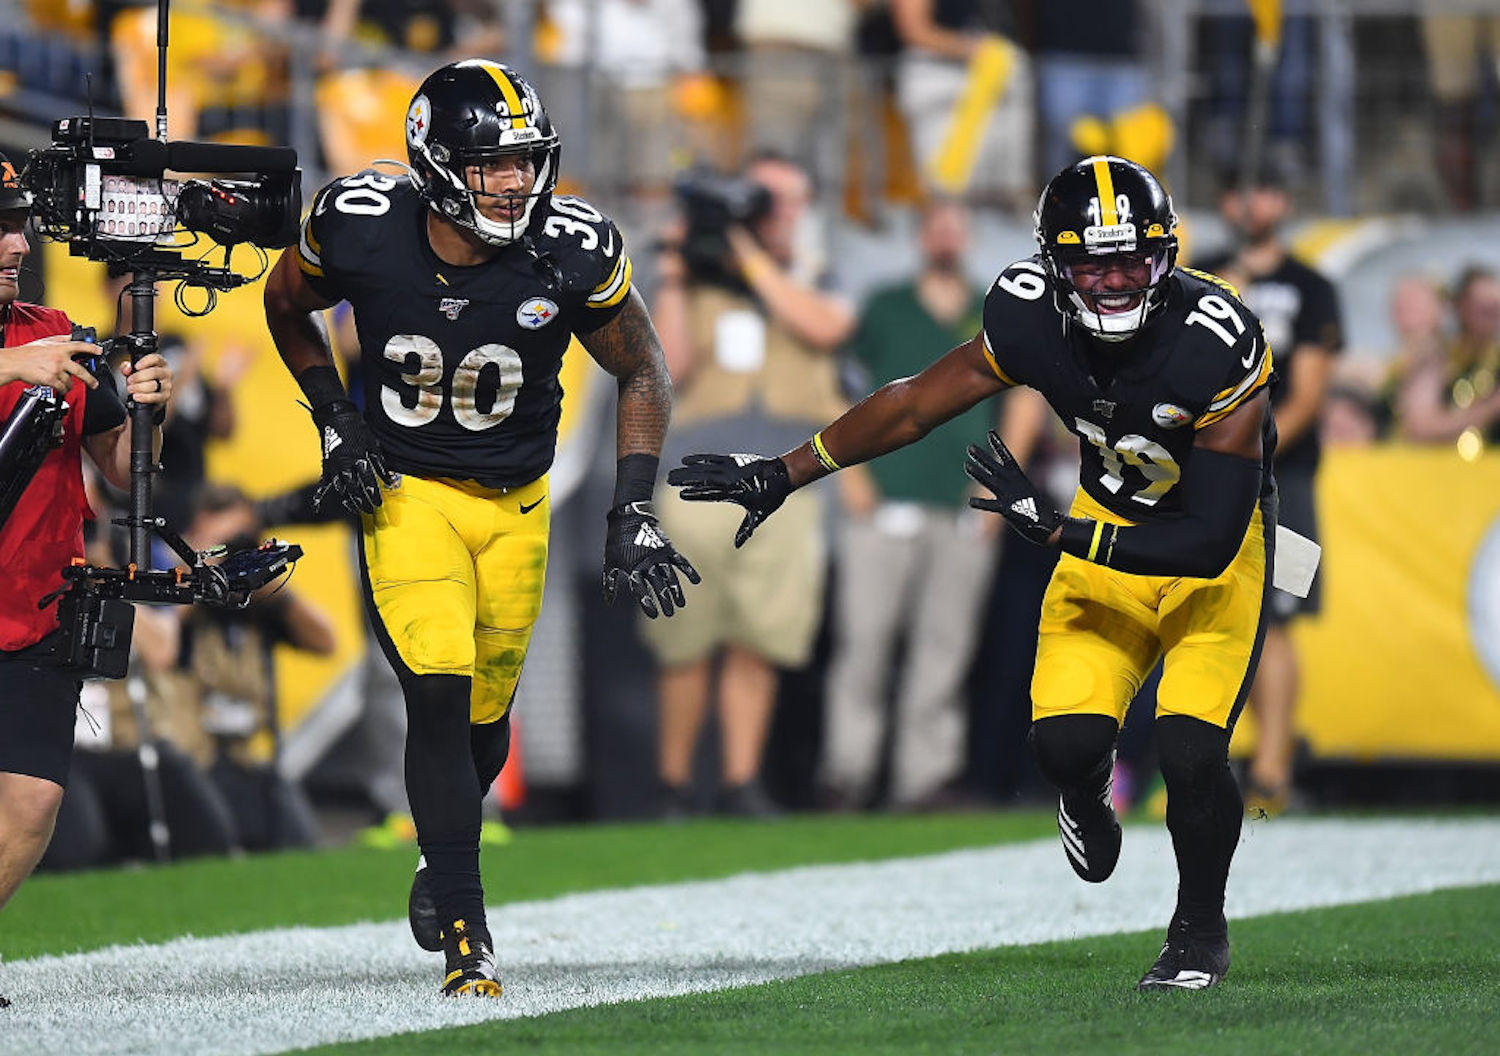 Steelers RB James Conner and WR JuJu Smith-Schuster were each fined $5,000 for wearing their socks too low on Sunday.